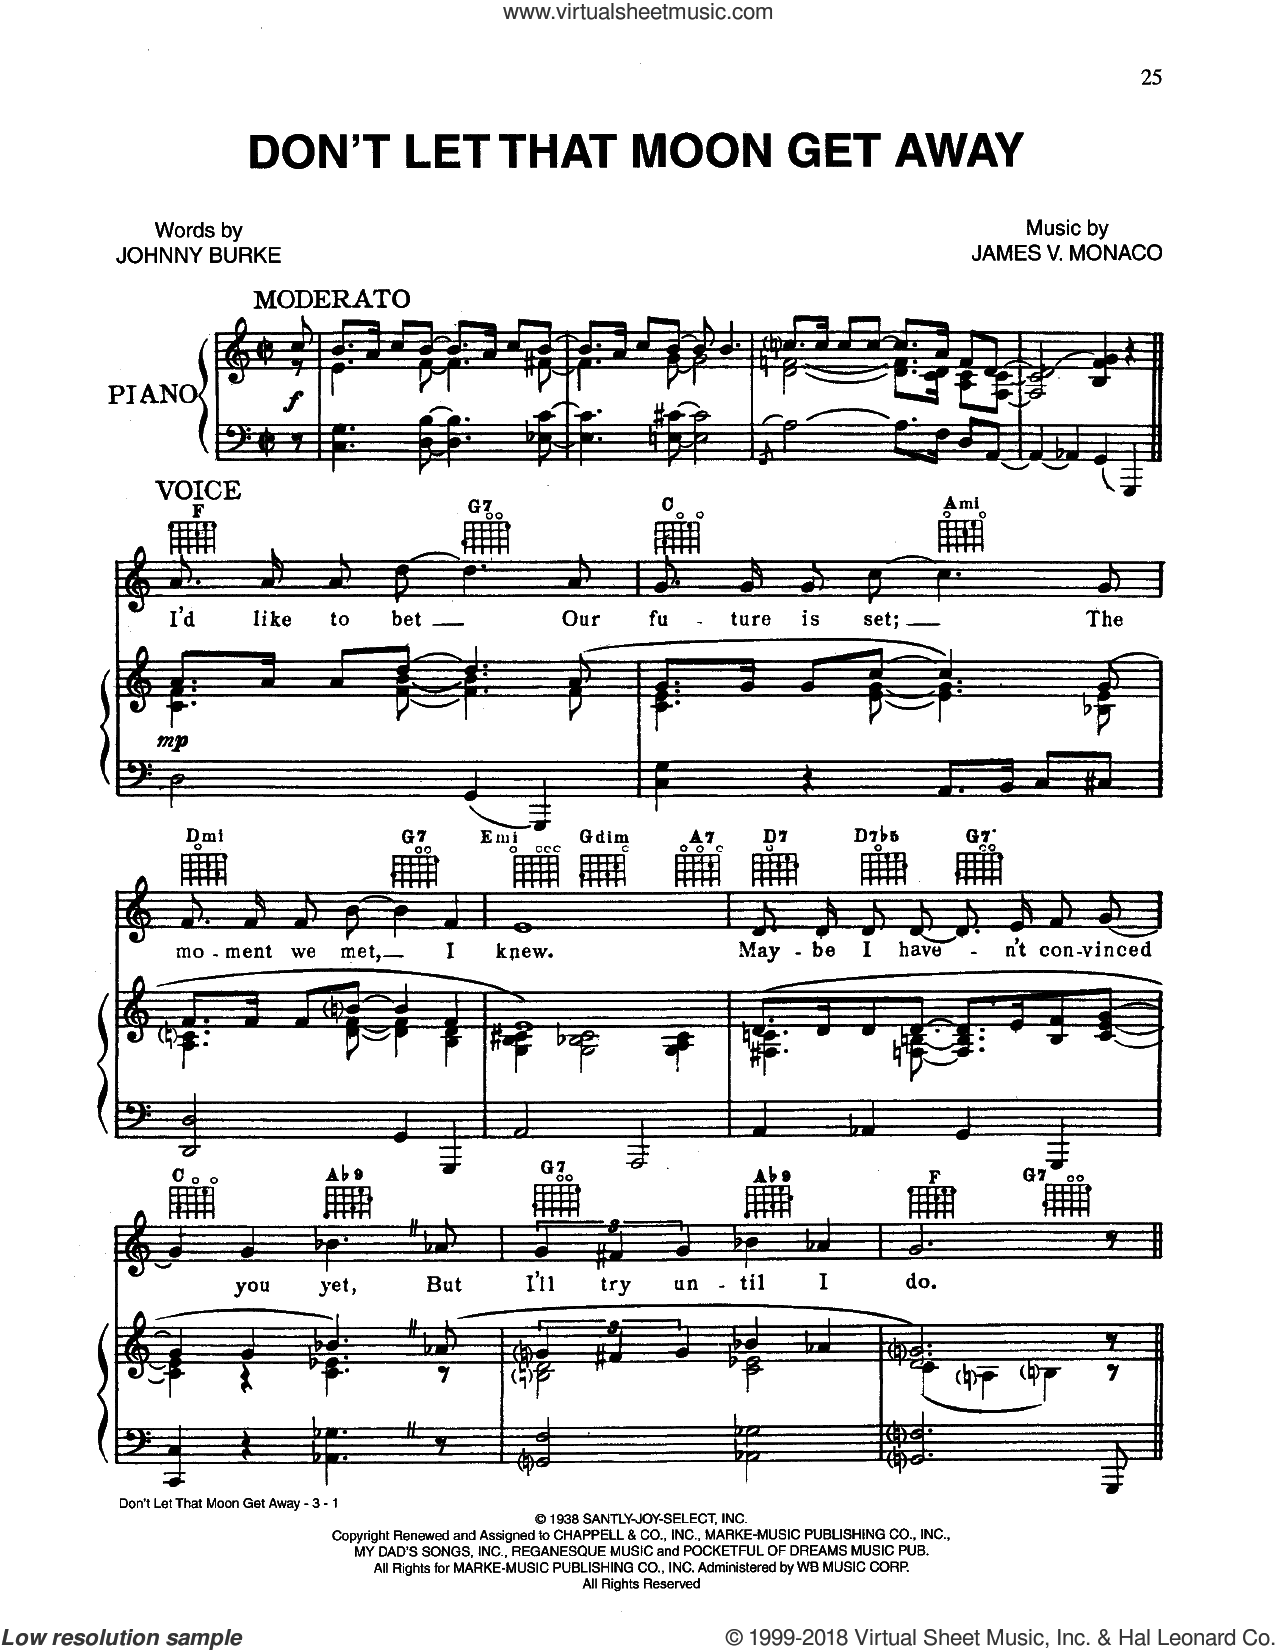 Don't Let That Moon Get Away sheet music for voice, piano or guitar by John Burke and James Monaco, intermediate skill level